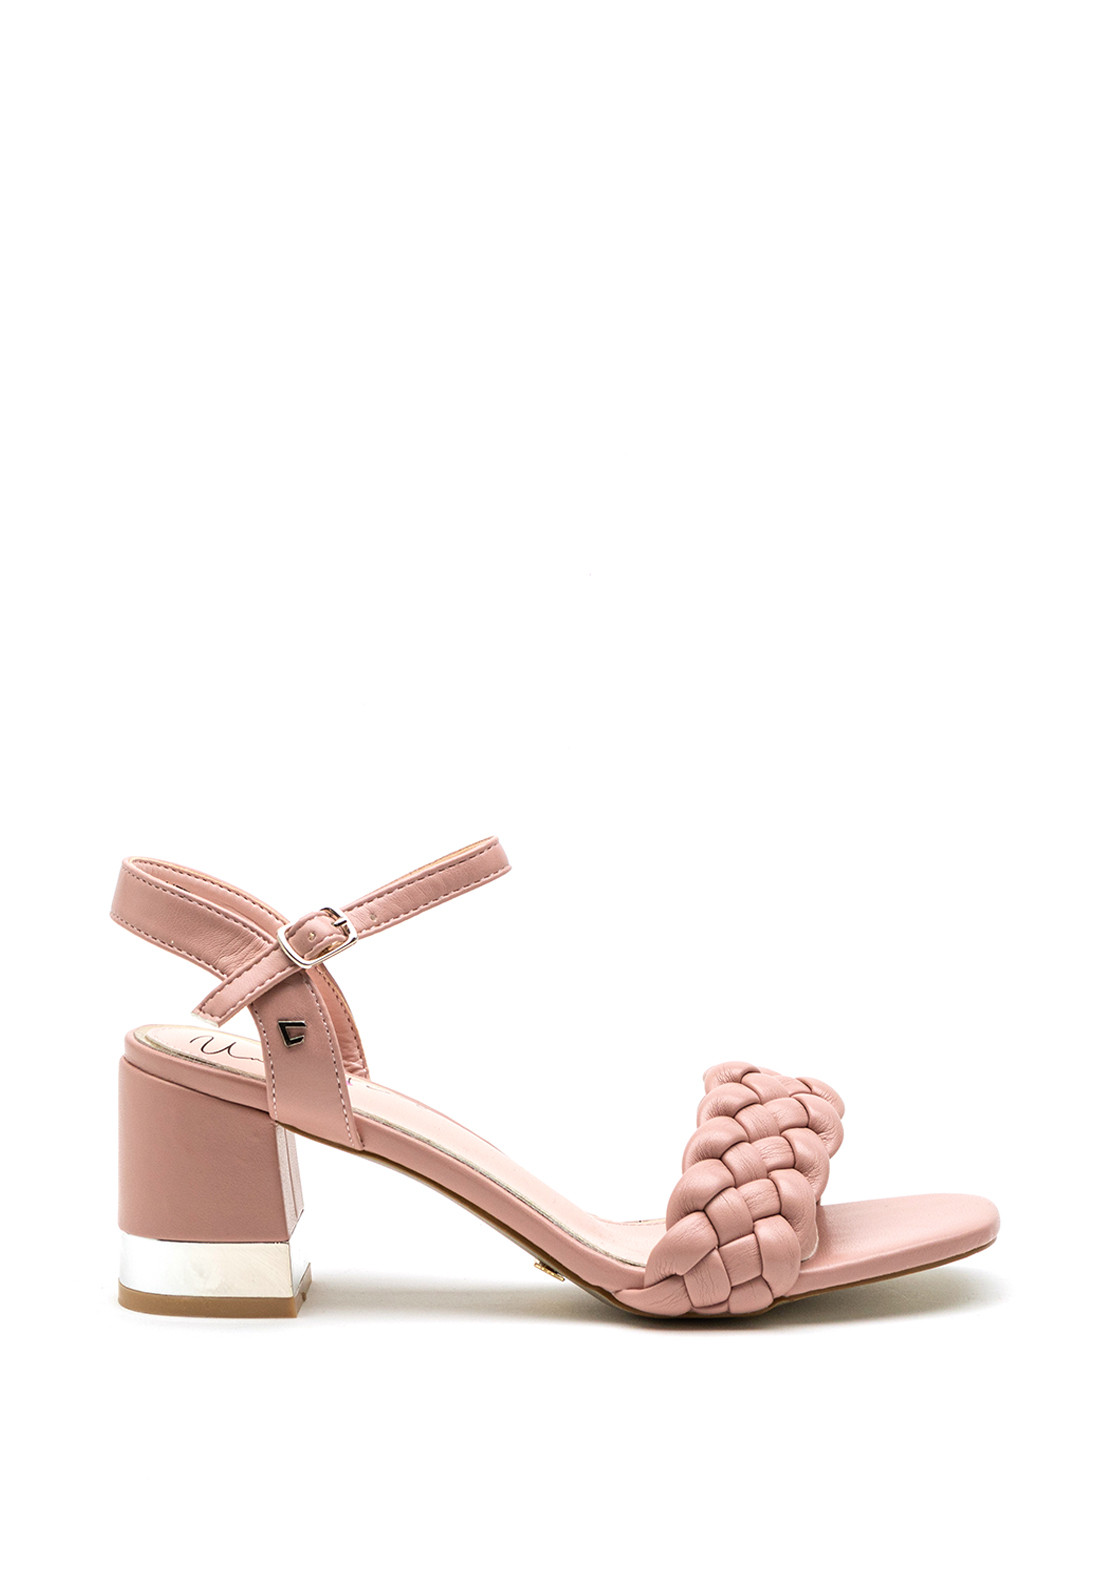 Una Healy Little Things Quilted Strap Block Heel Sandal, Pink